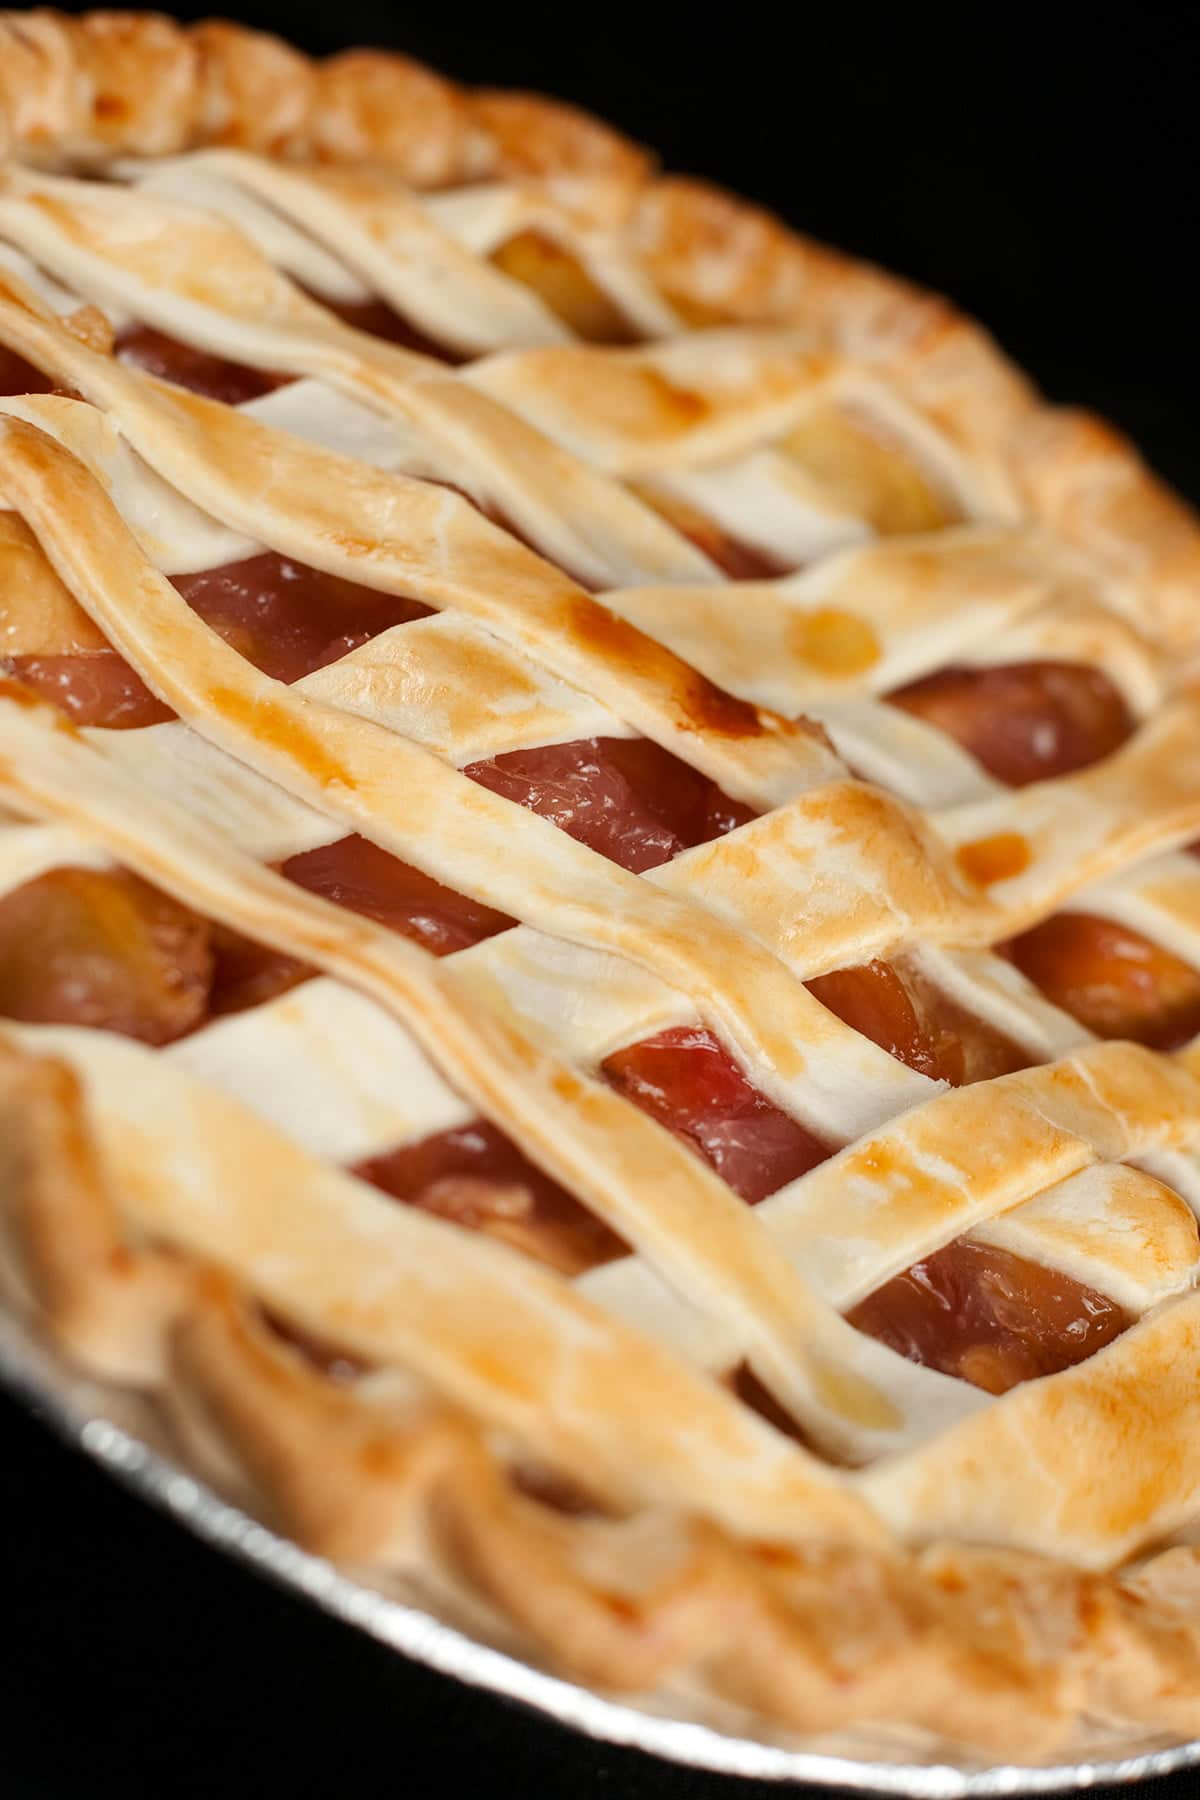 A Southern Comfort peach pie with lattice style crust is shown against a black background.